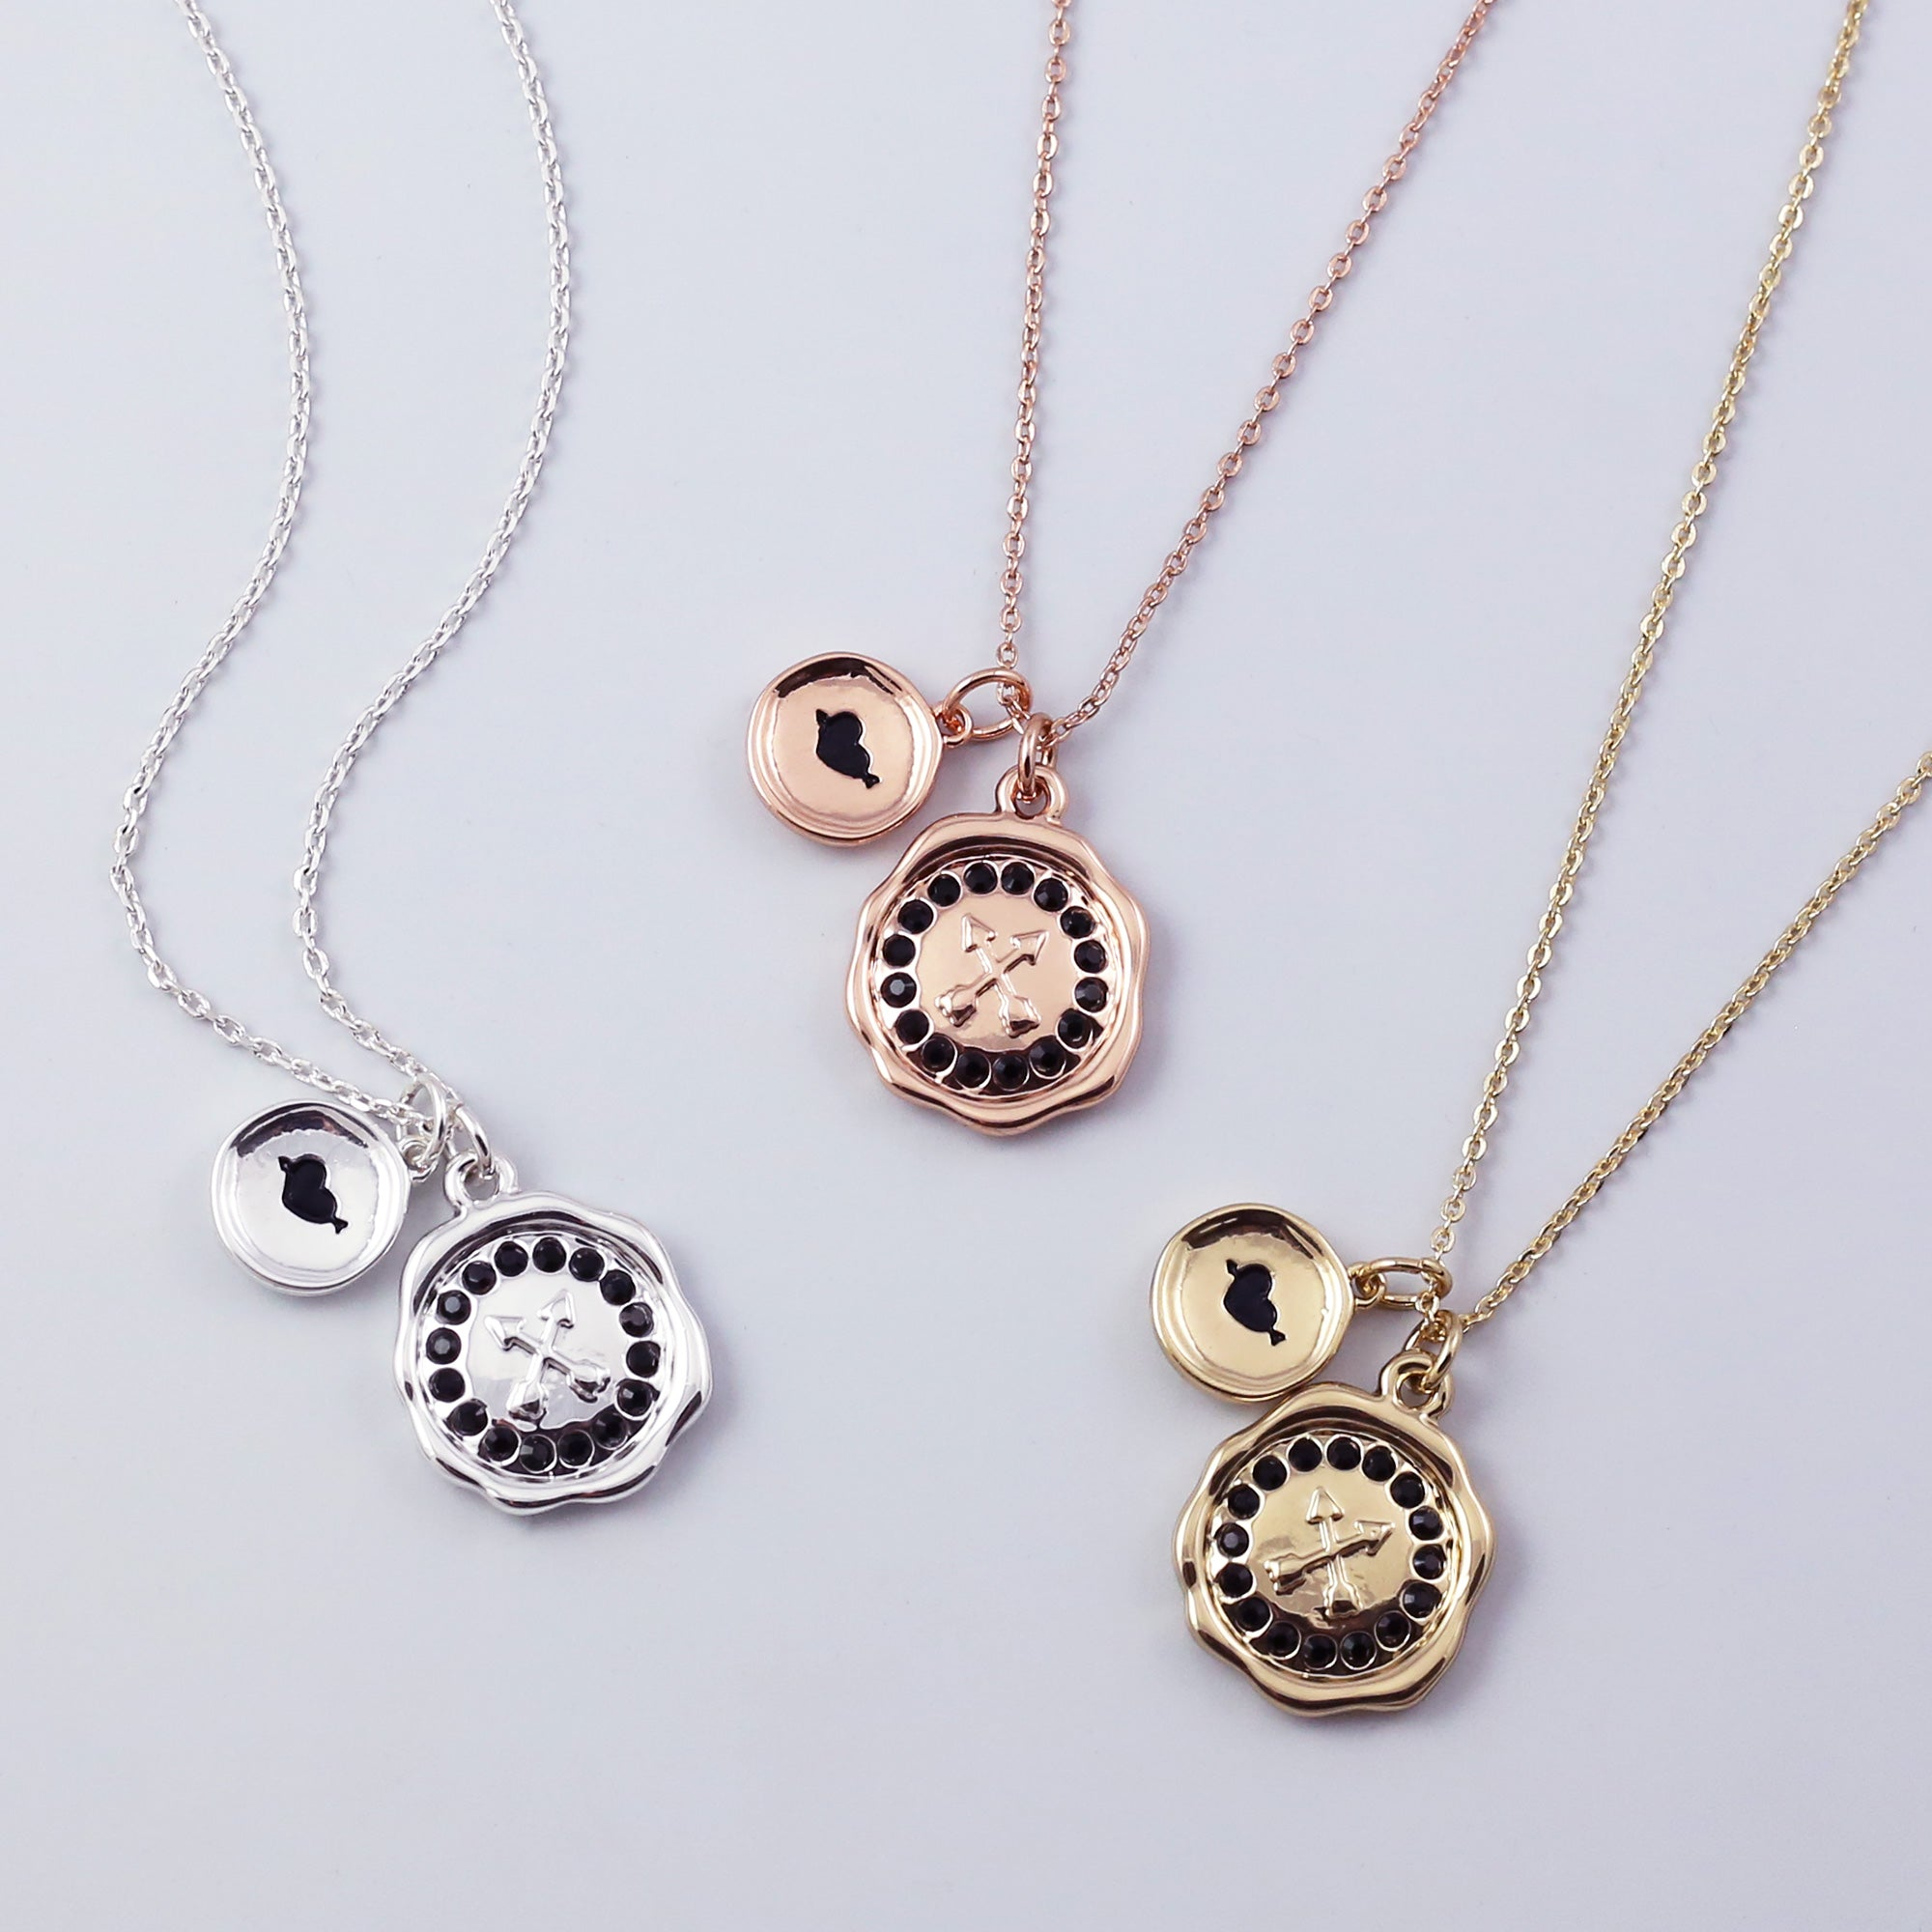 Friendship Symbol Charm Necklace